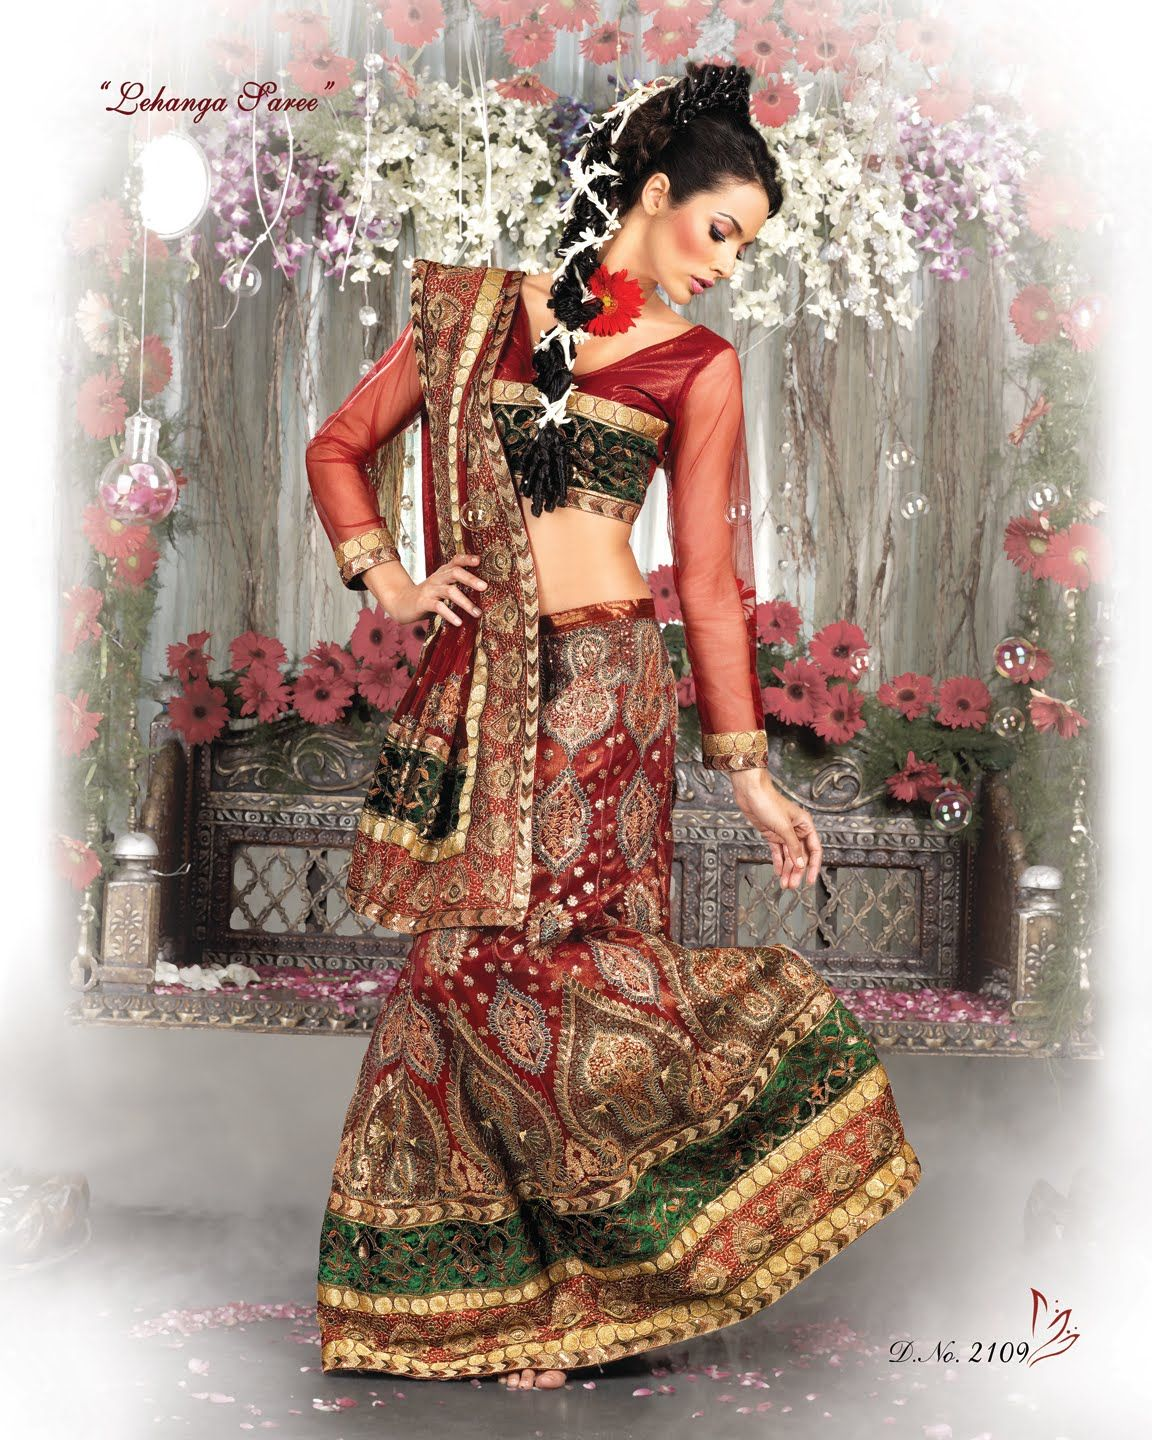 Here View Traditional Indian Wedding DressesOr Bridal Outfits TrendsFor More